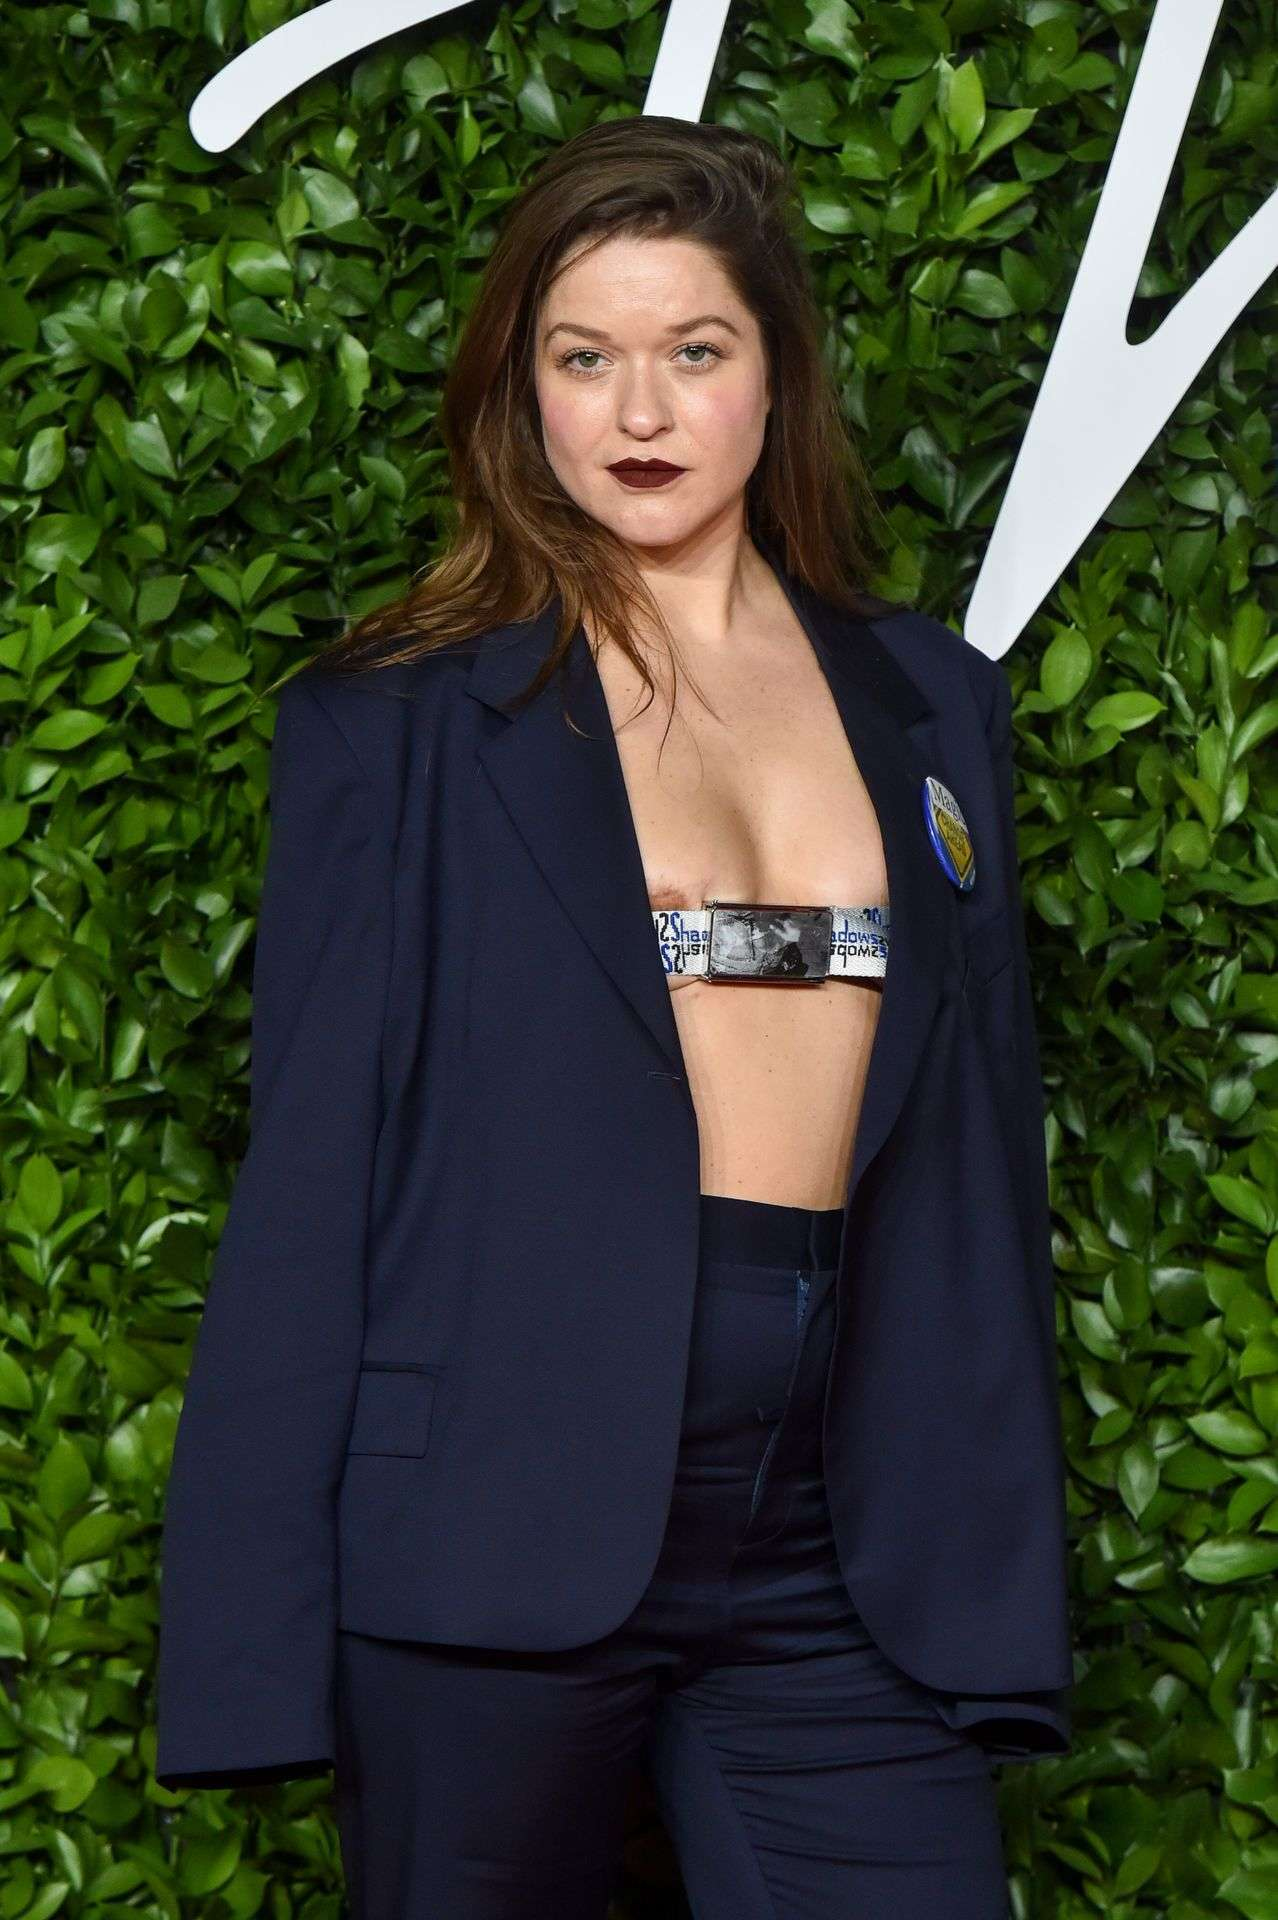 Madeleine Østlie on Red Carpet at The Fashion Awards at Royal Albert Hall in London